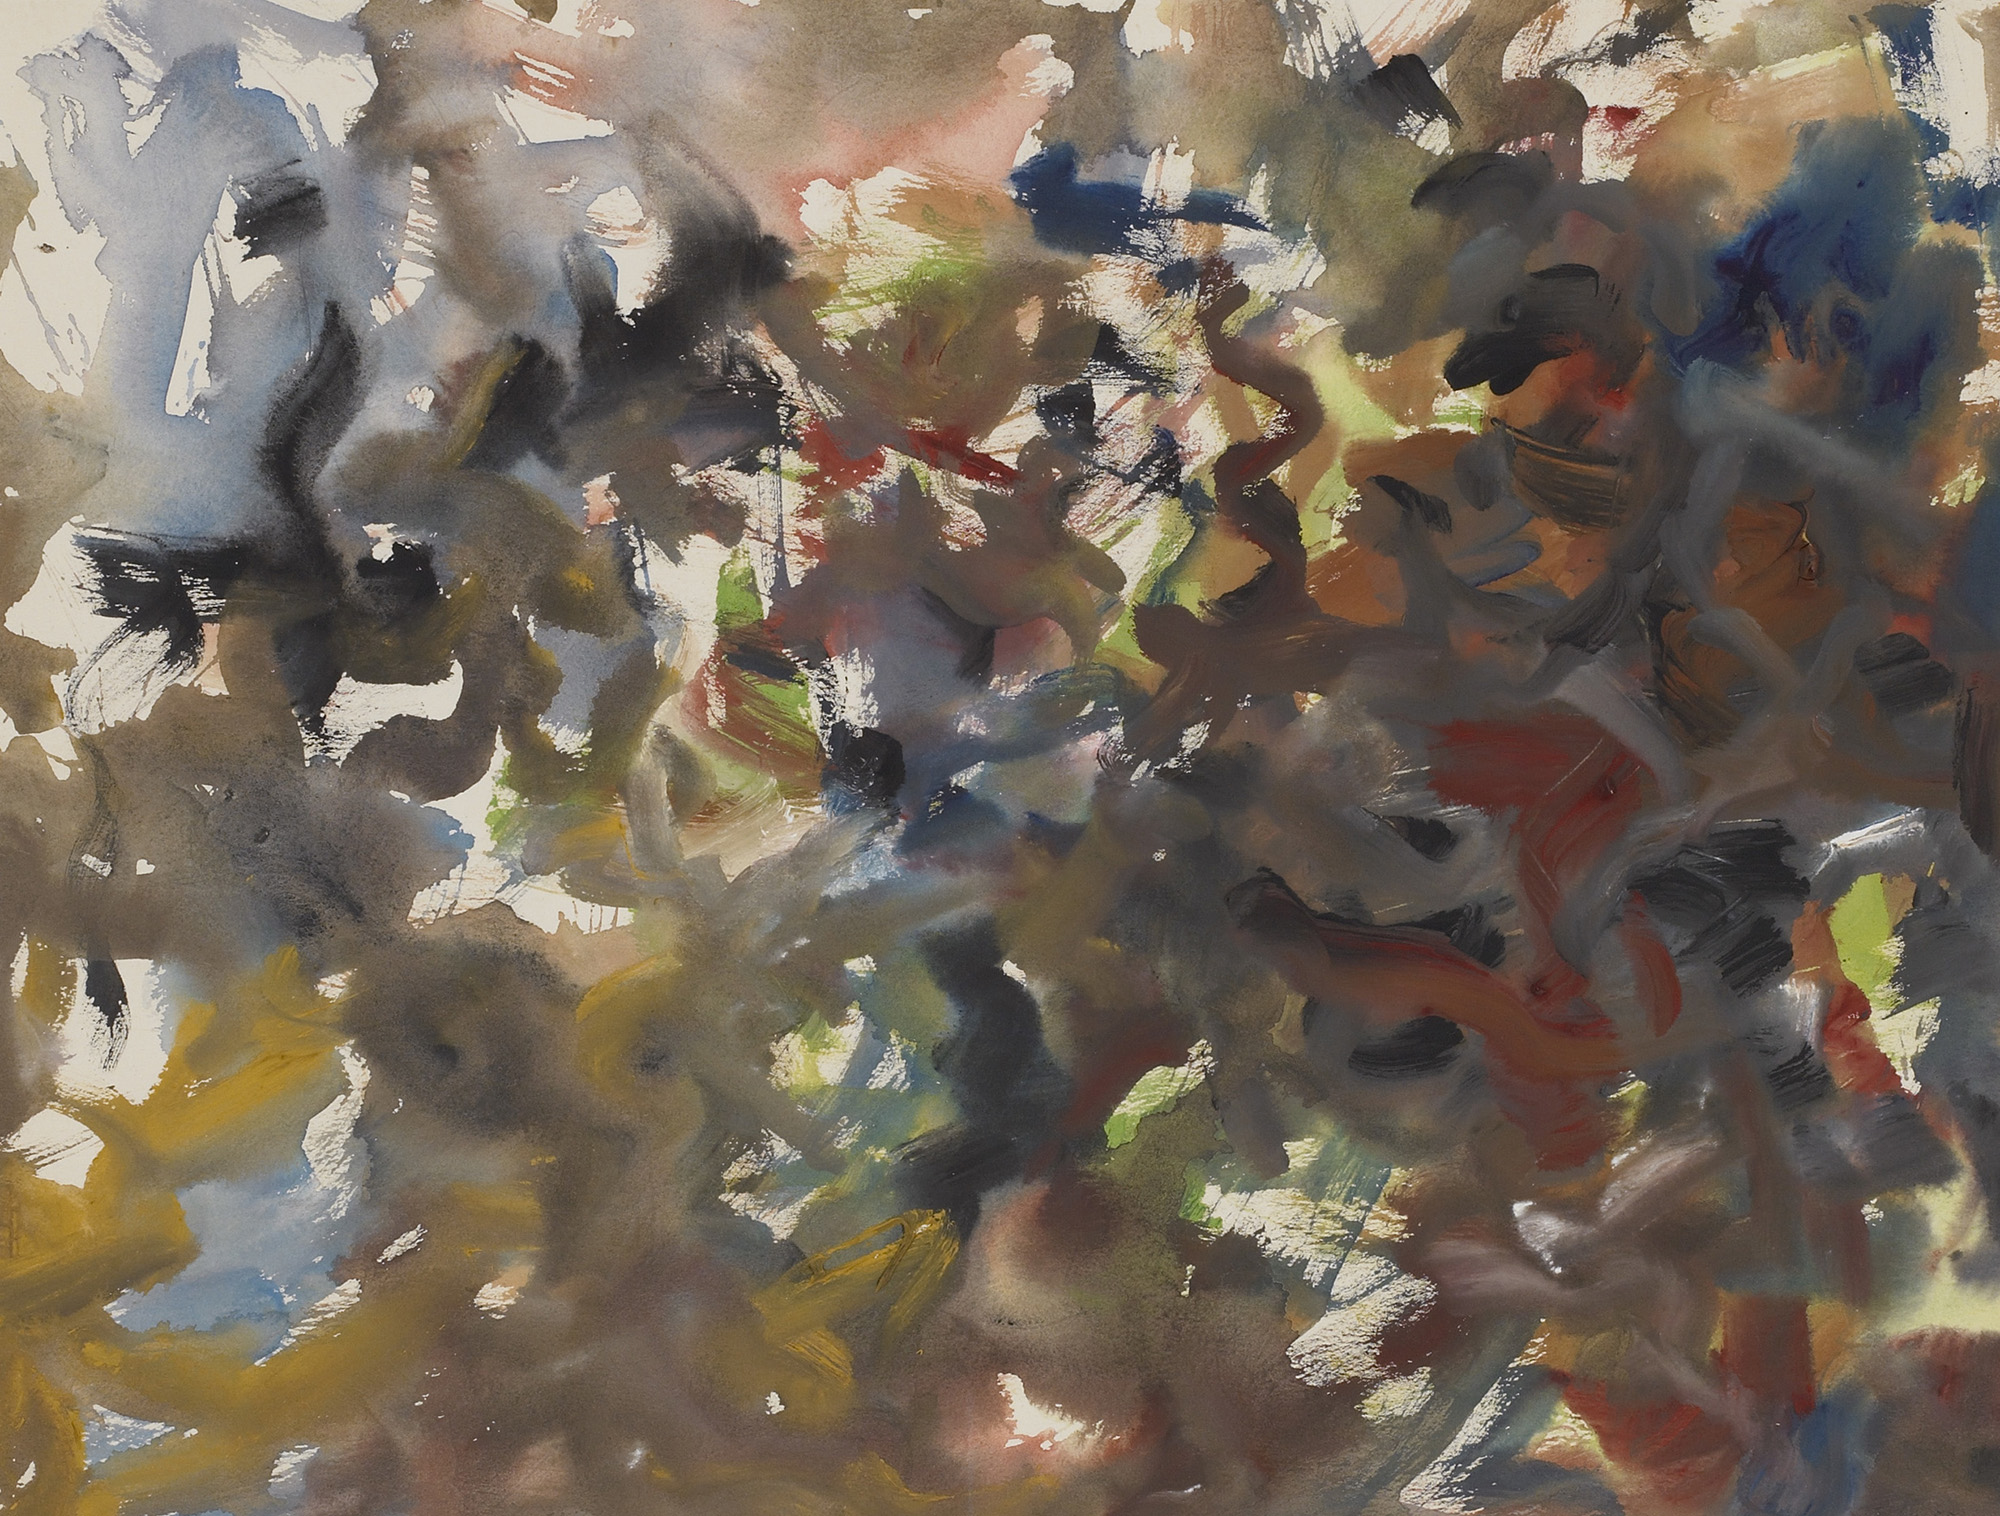 Untitled #1, 1955  , gouache on paper, 18 1/2 x 23 1/2 inches